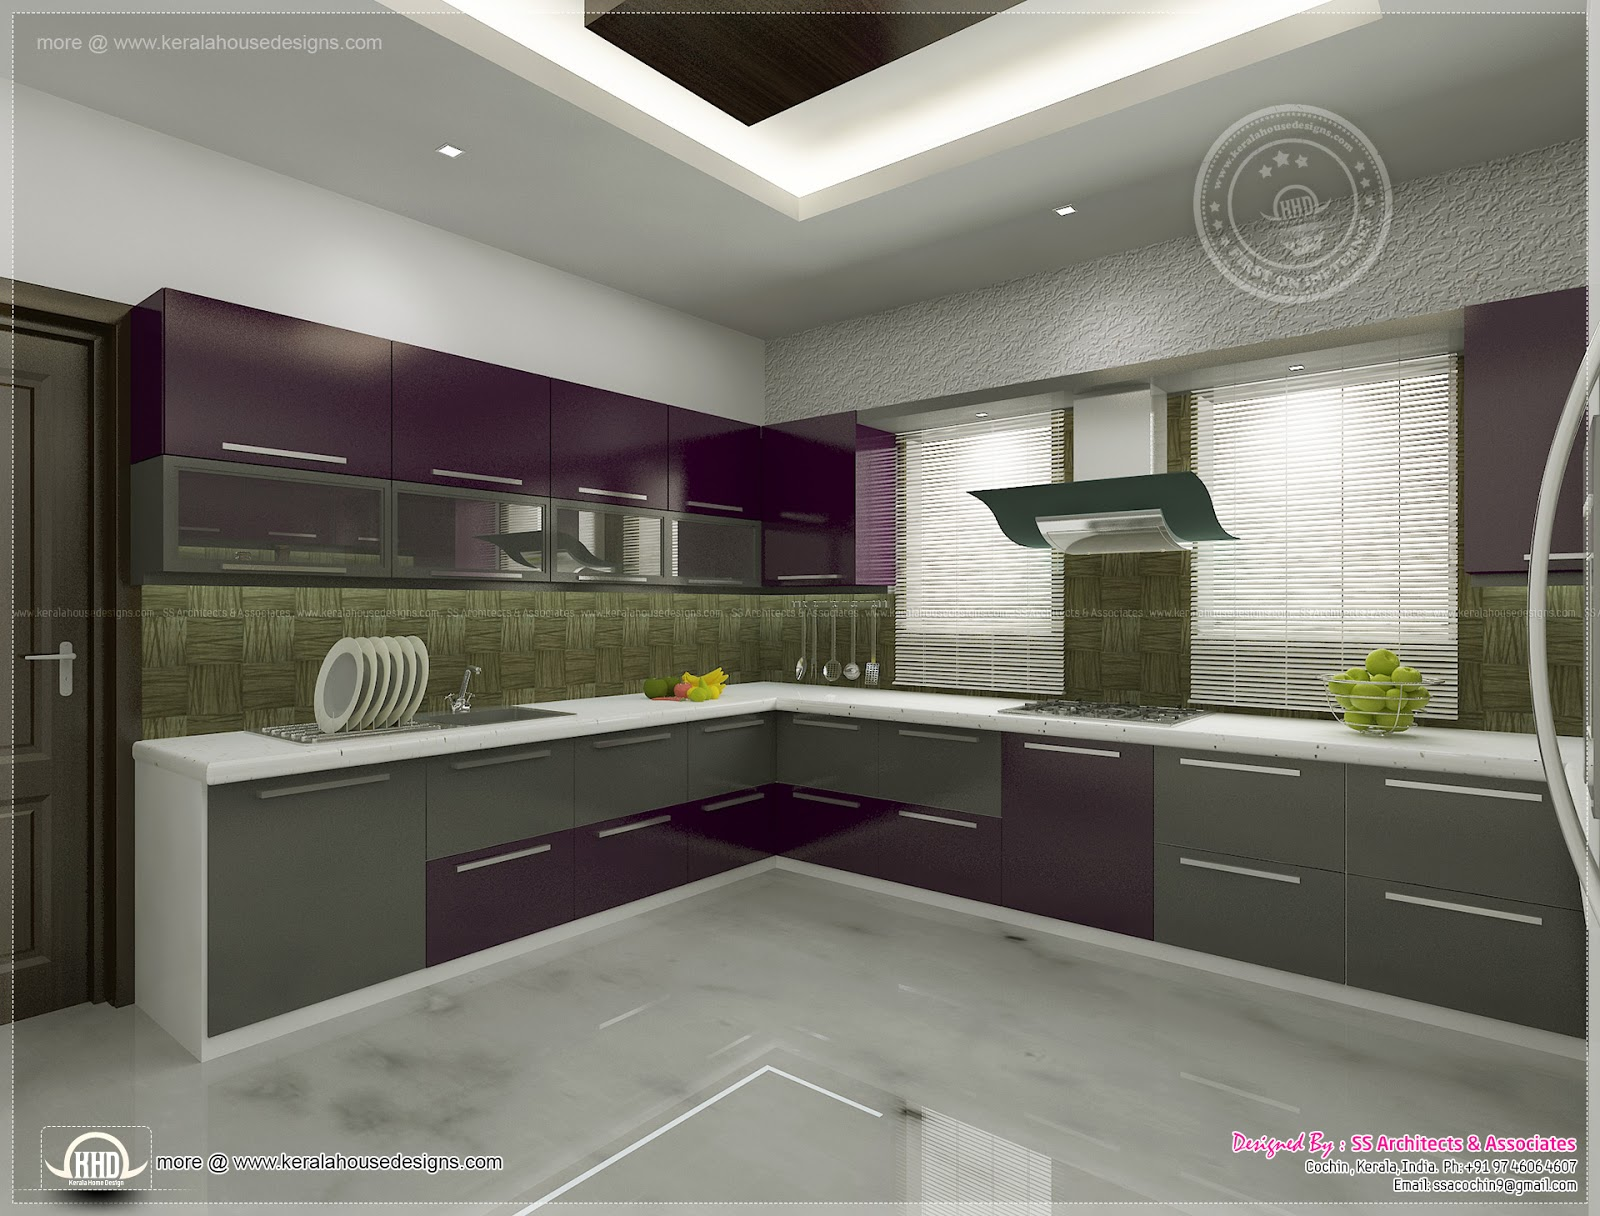 Superb kitchen and bedroom interiors - Kerala home design ...